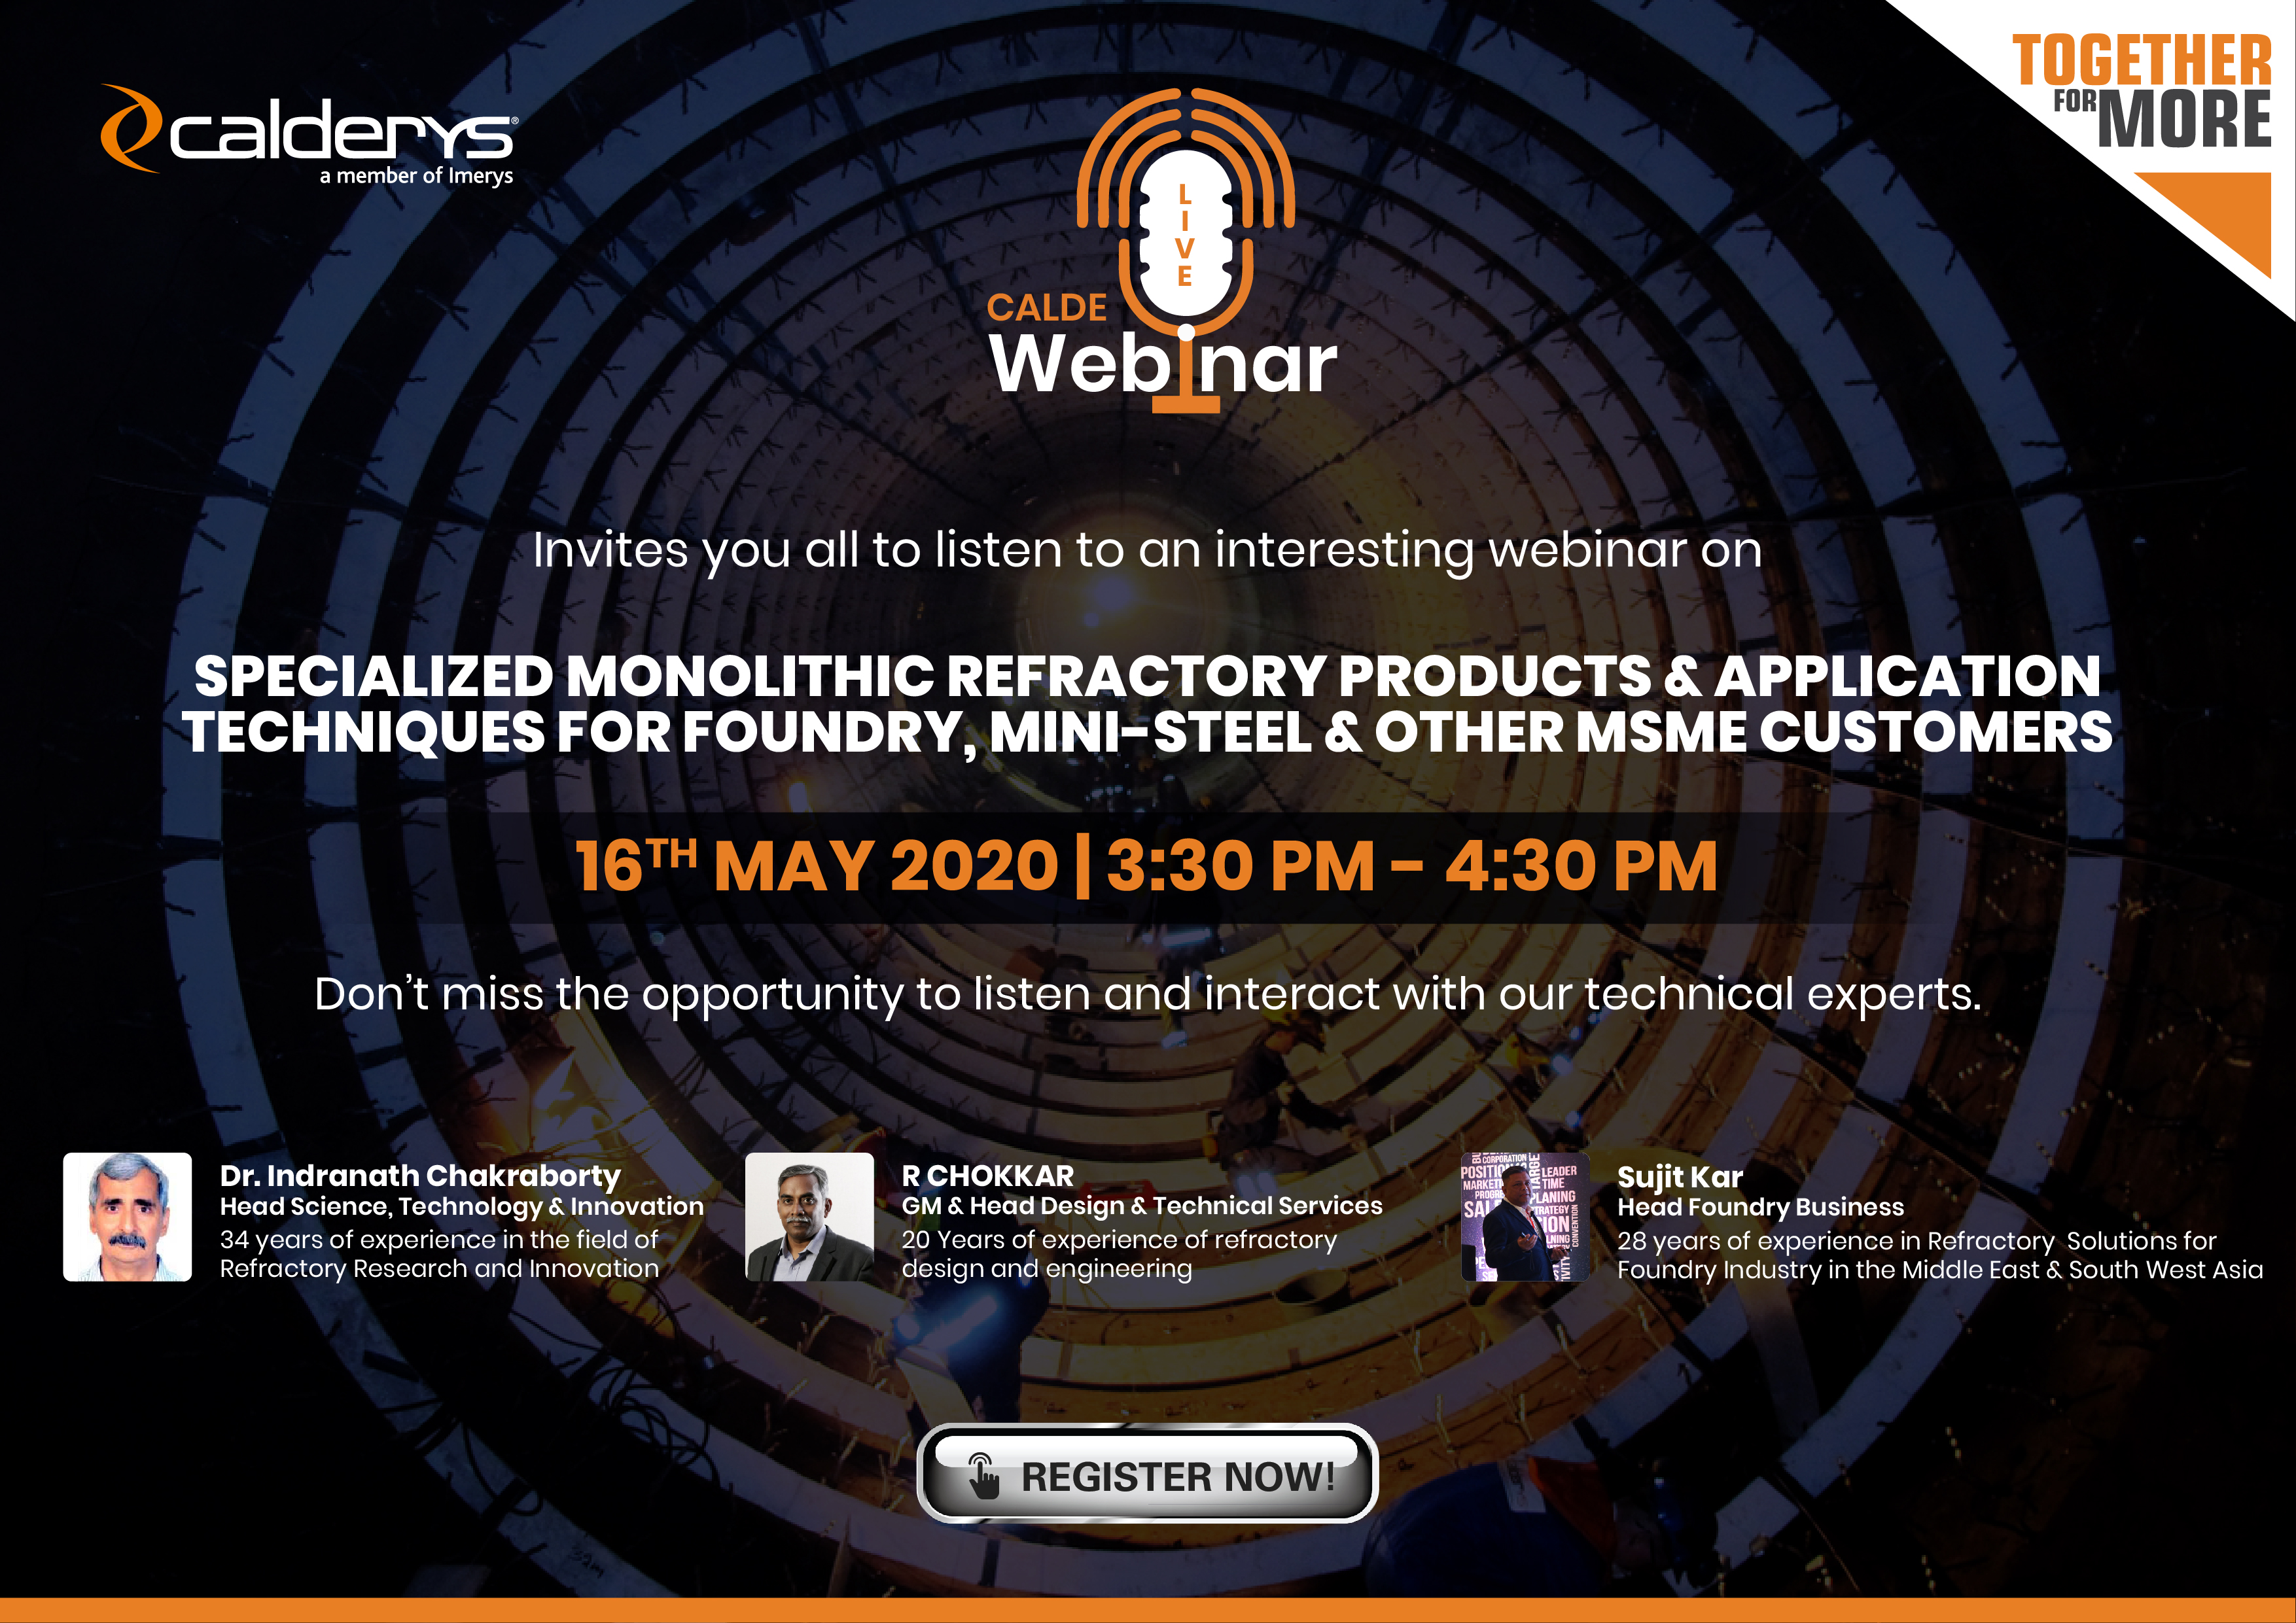 Calde Webinar image for Foundry